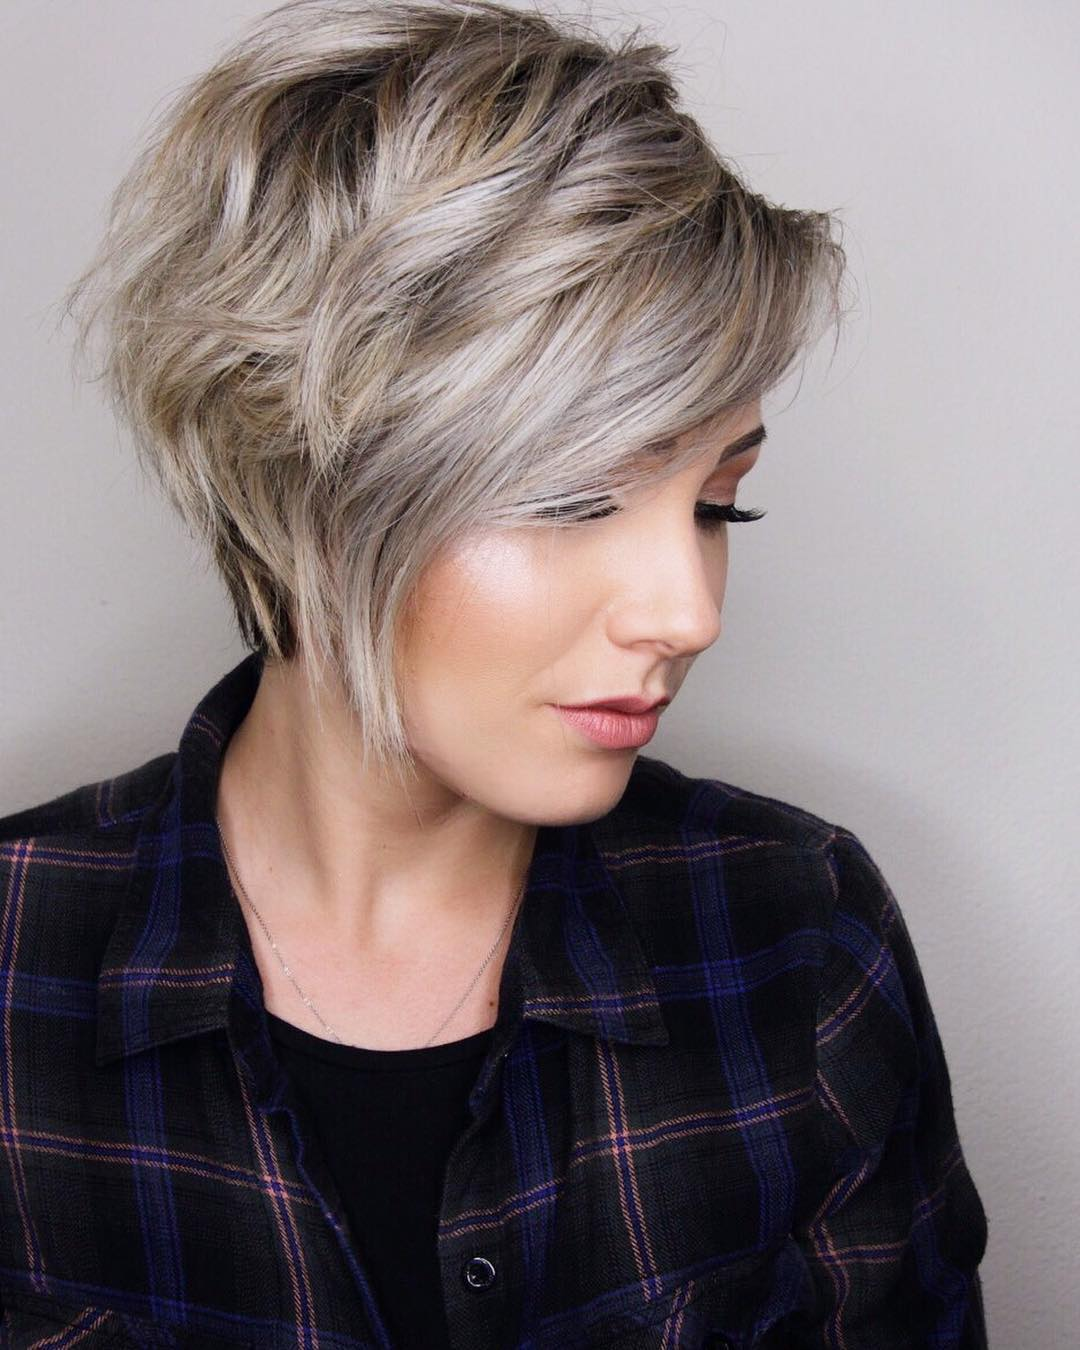 short layered styles for thick hair 10 trendy layered haircut ideas special 6825 | best layered short haircut women short hairstyle for thick hair 1